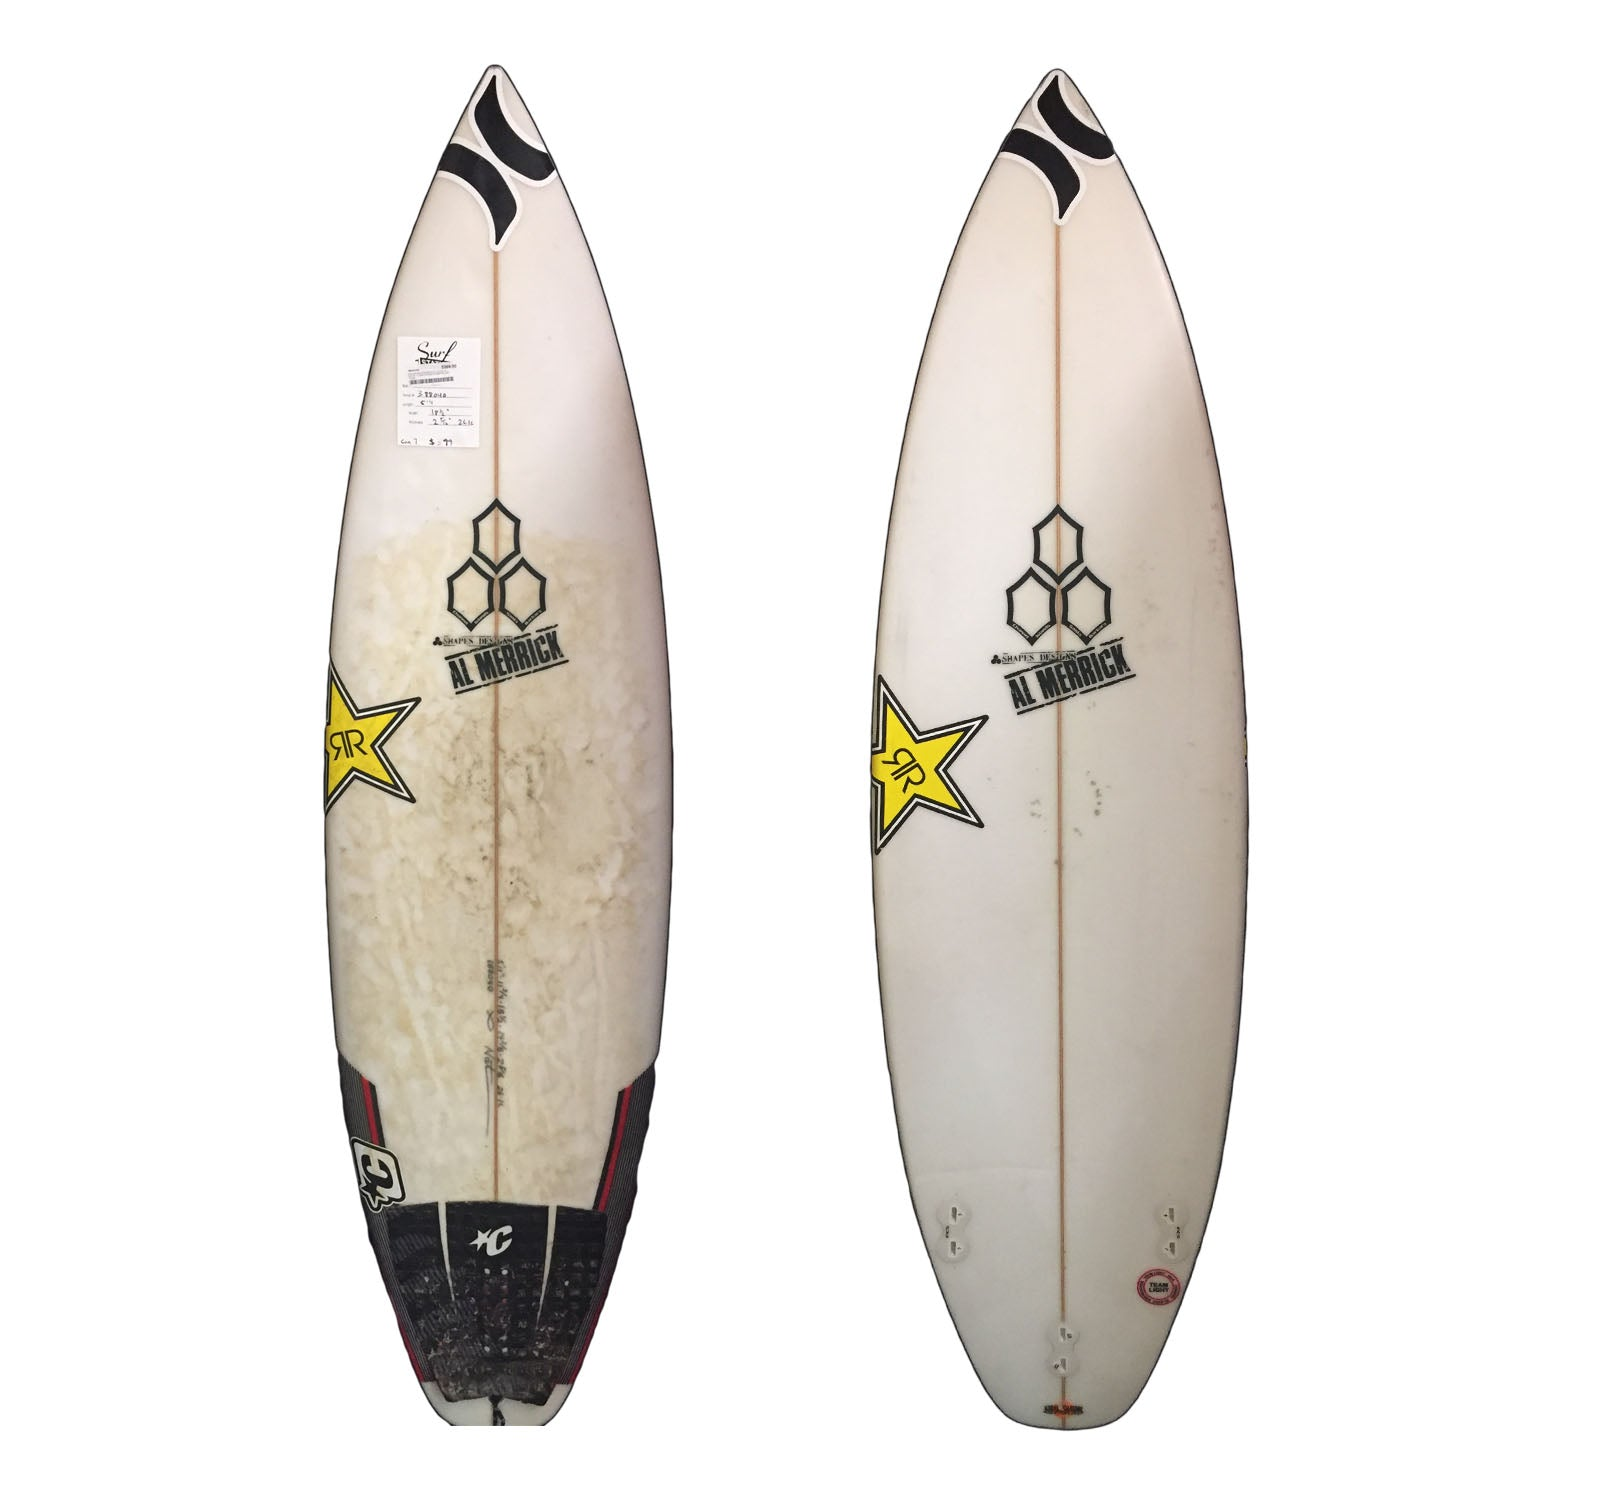 Channel Islands Custom 5'11 x 18 1/2 x 2 5/16 26.1L Used Surfboard (Team Custom For Nat Young)